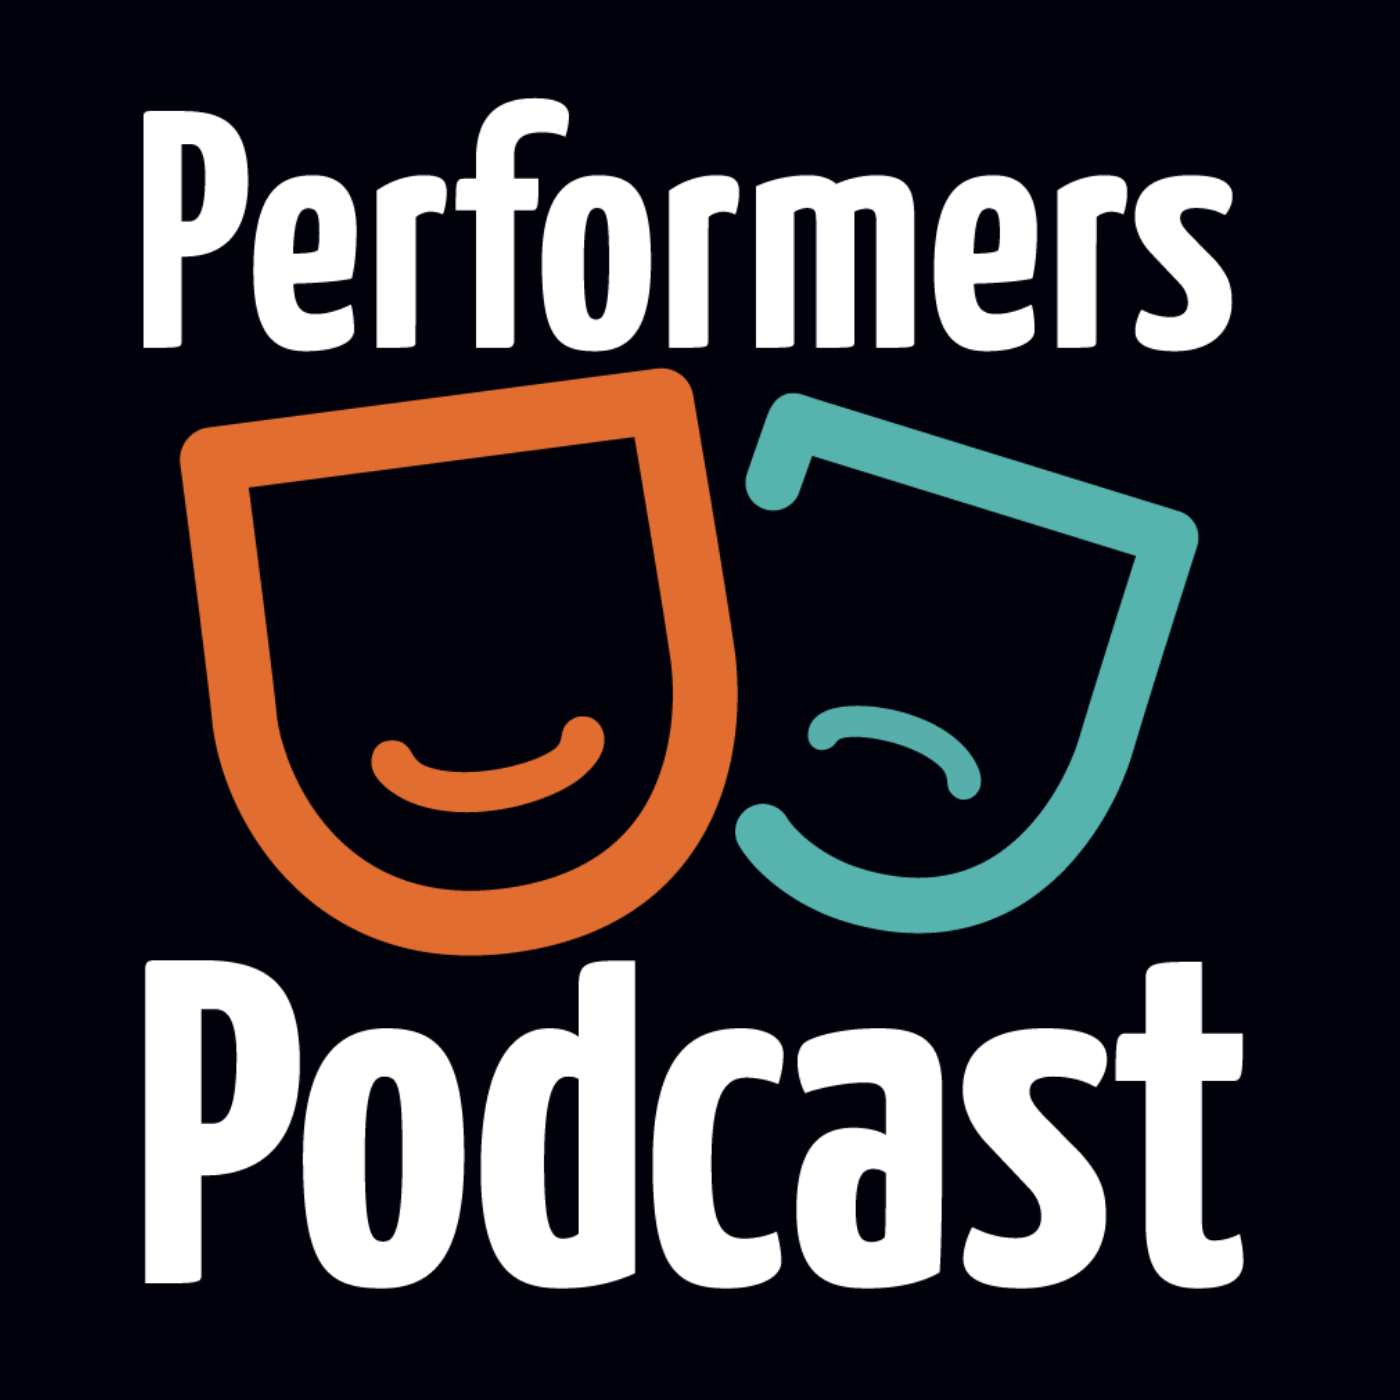 The Performers Podcast show art